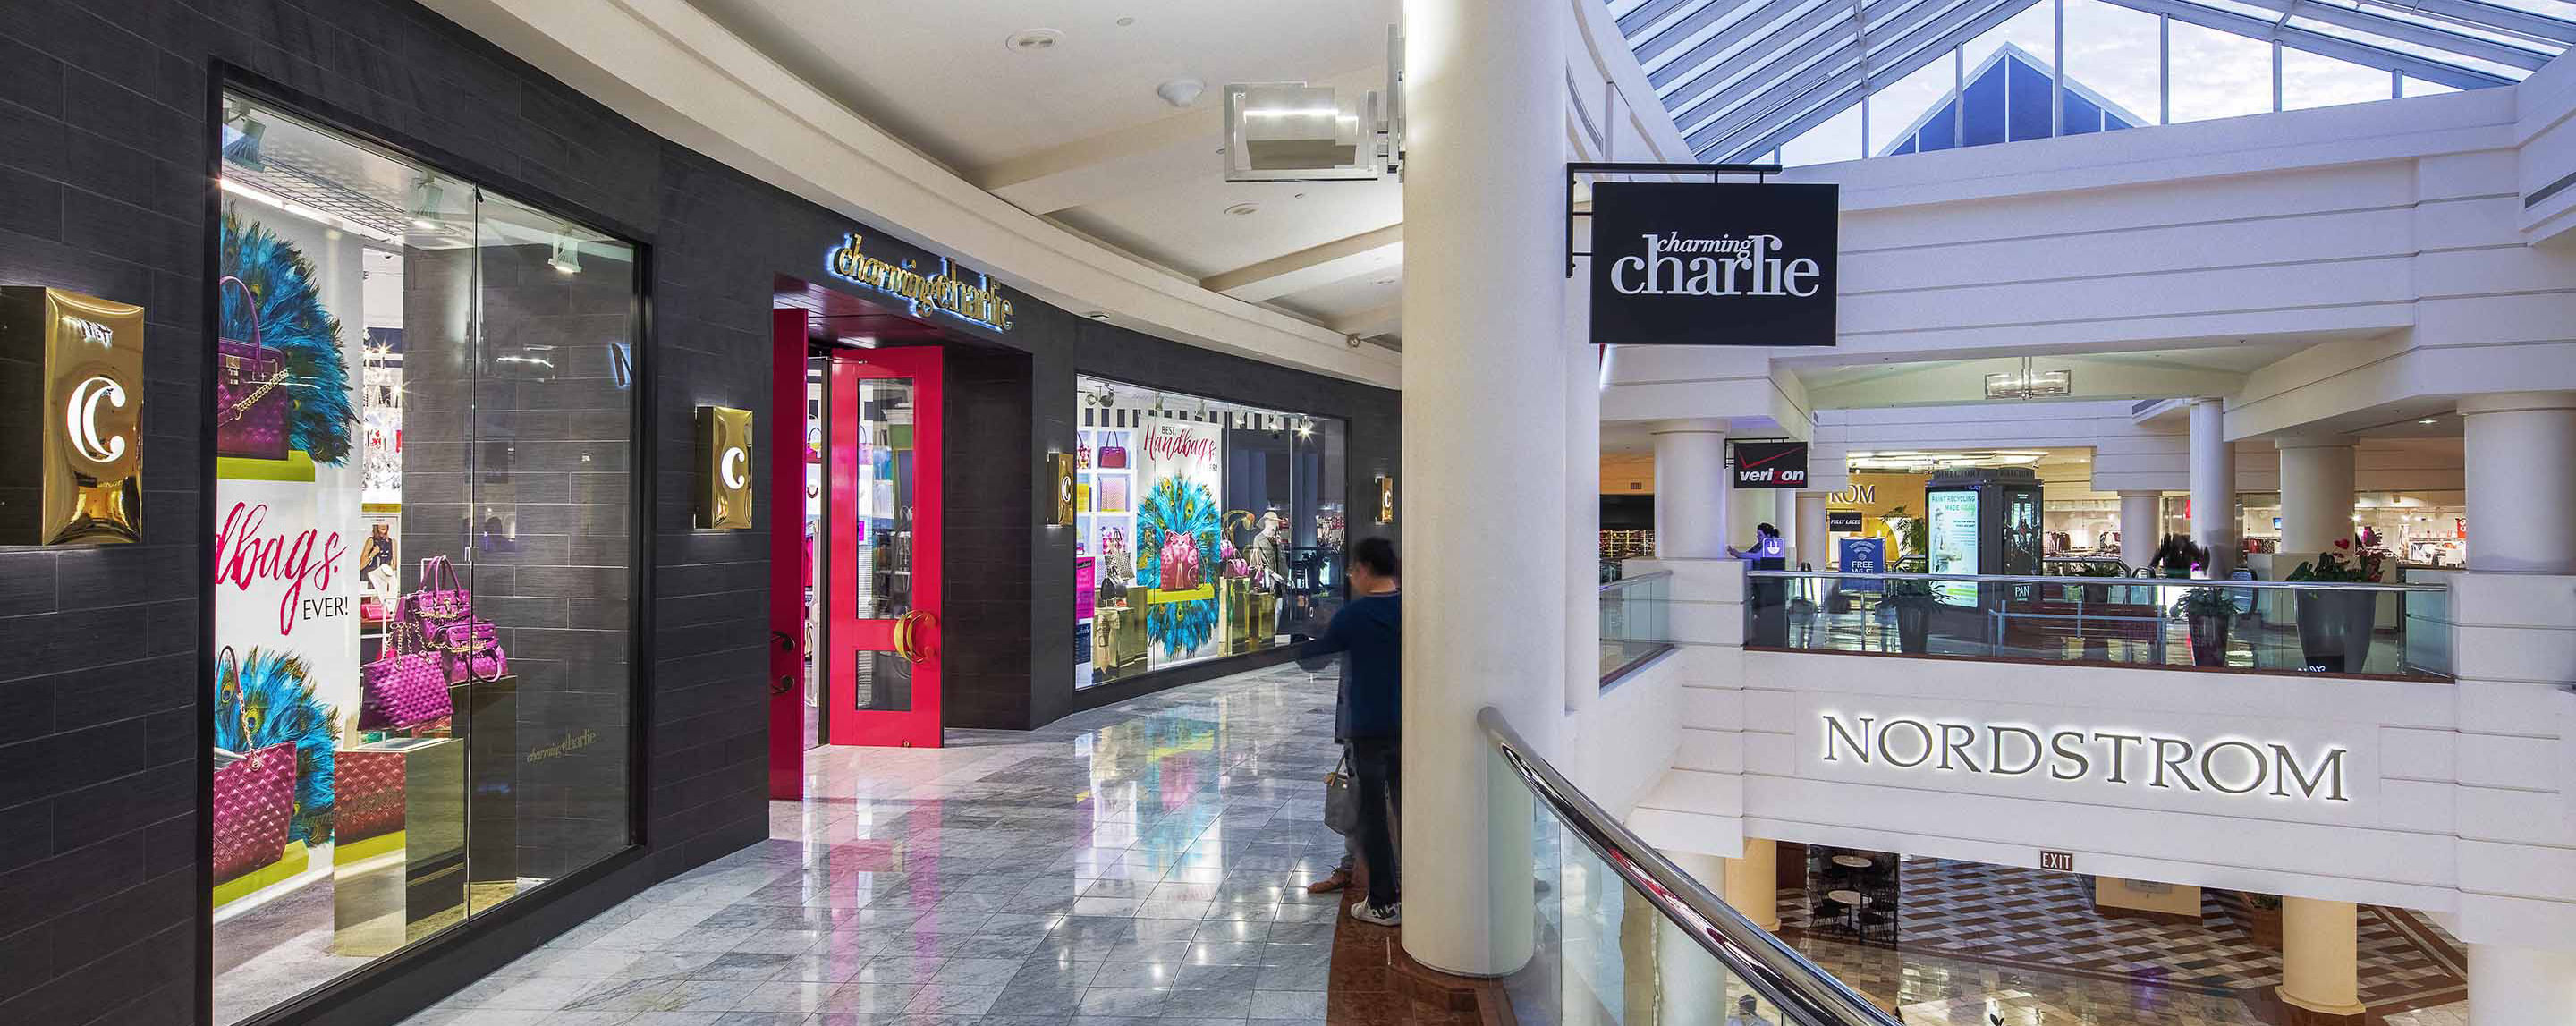 Shoppers stroll around such stores as Charming Charlie and Nordstrom on a sunny day at Stonestown Galleria.